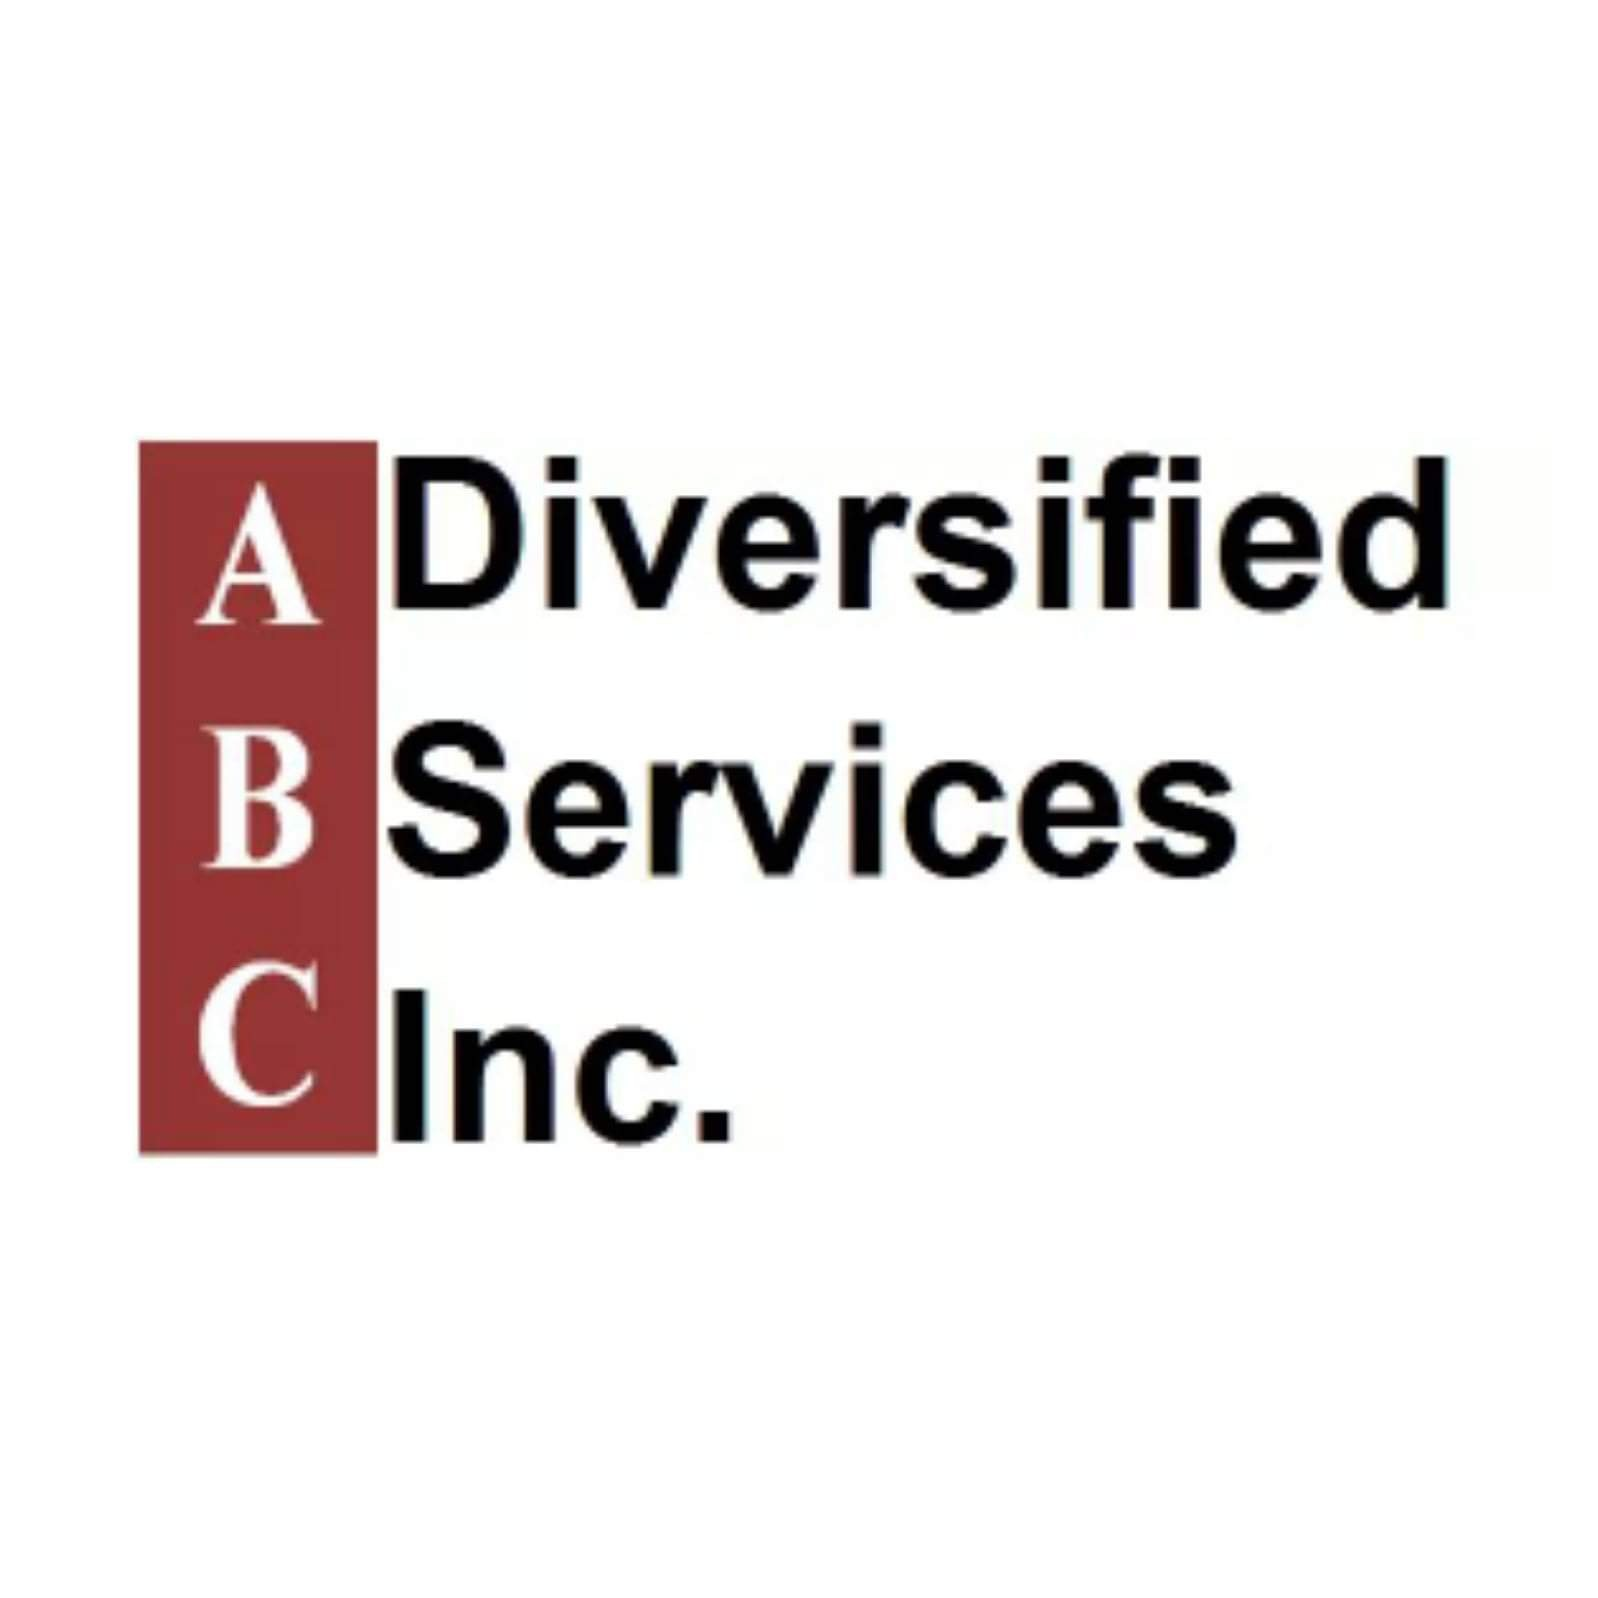 ABC Diversified Services, Inc.